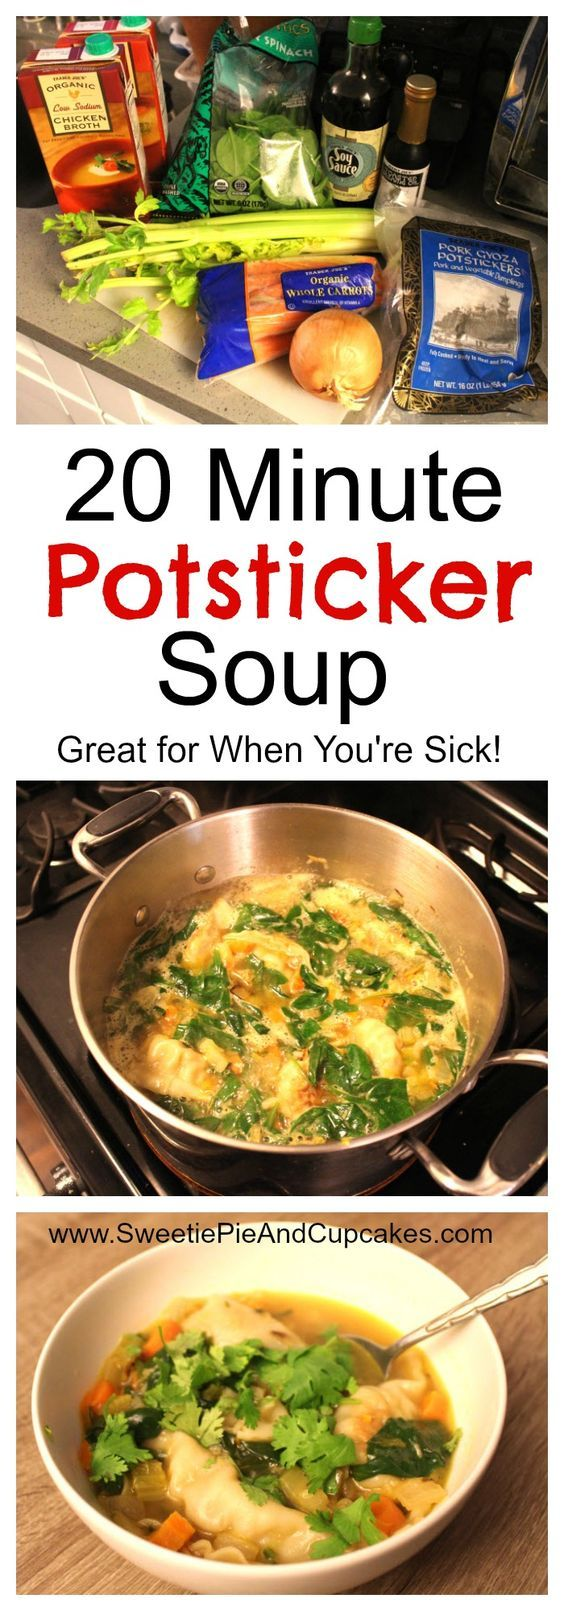 This potsticker soup is easy to make and packed full of nutrition. If you are looking for a soup for your family that rivals your favorite Chinese restaurant wonton soup, then you've come to the right place! A great soup for when you are sick! This potsticker soup freezes well and can even be made vegetarian style. Get the recipe at SweetiePieAndCupcakes.com!